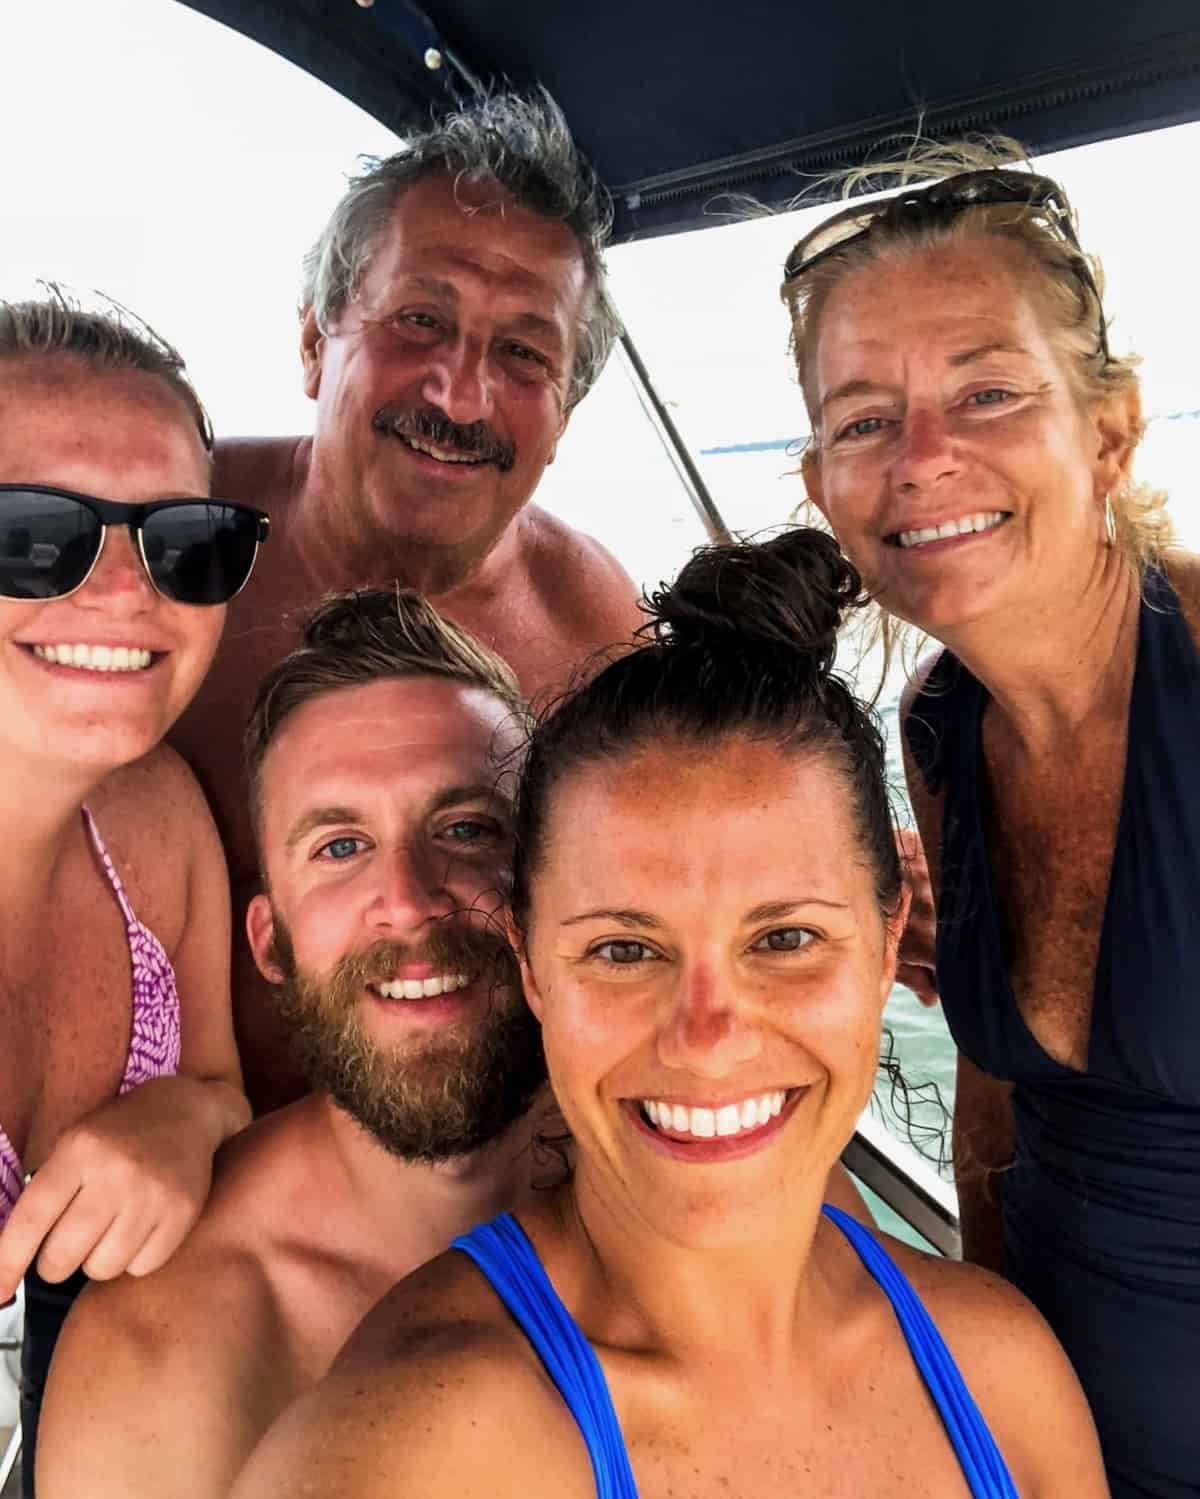 A family on a boat - a dad, mom, 2 sisters, and one of the sister's fiancé